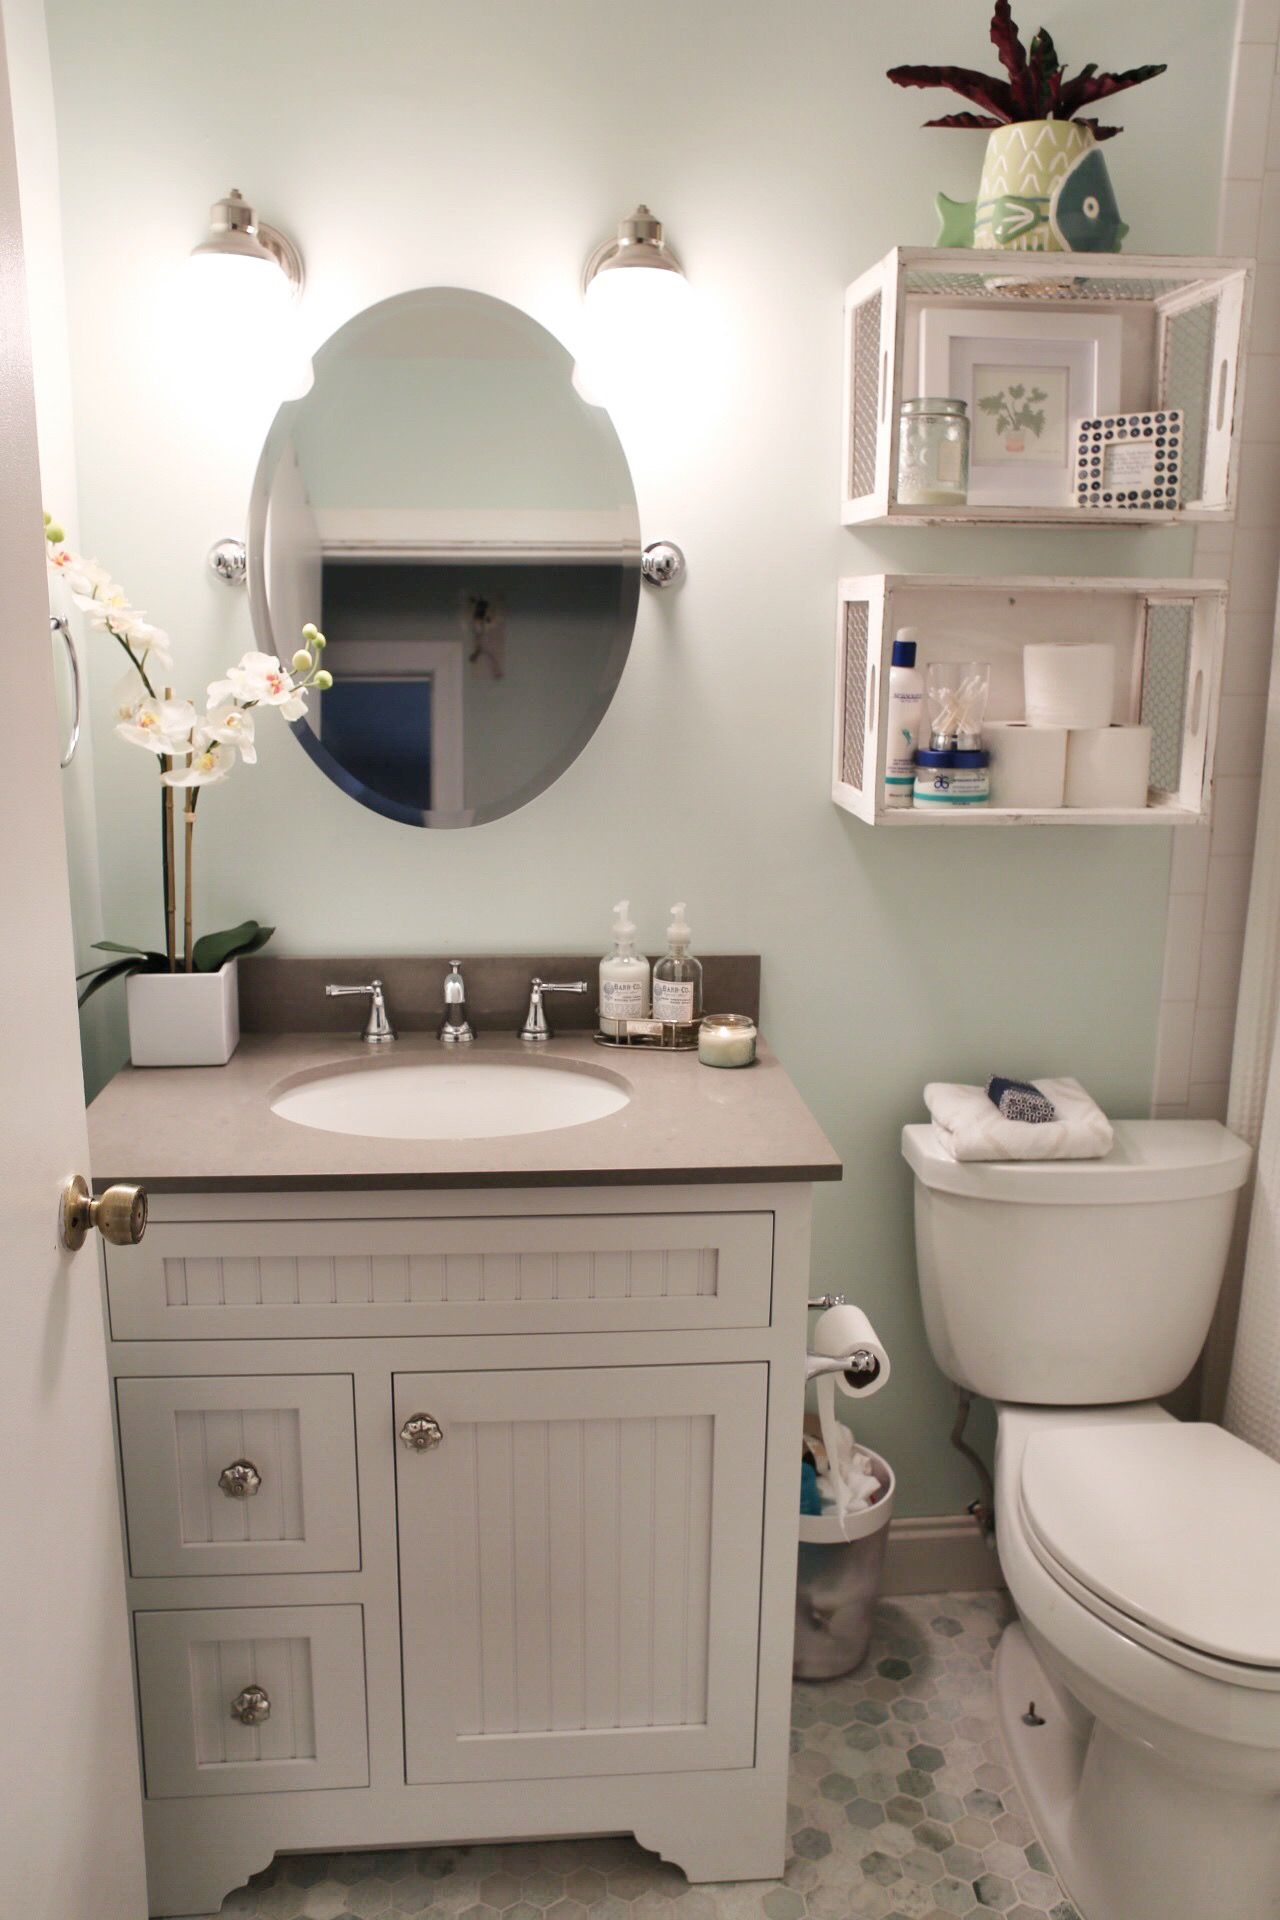 Small Bathroom Mirror Small Bathroom Renovation With Before And After Photos Bathrooms